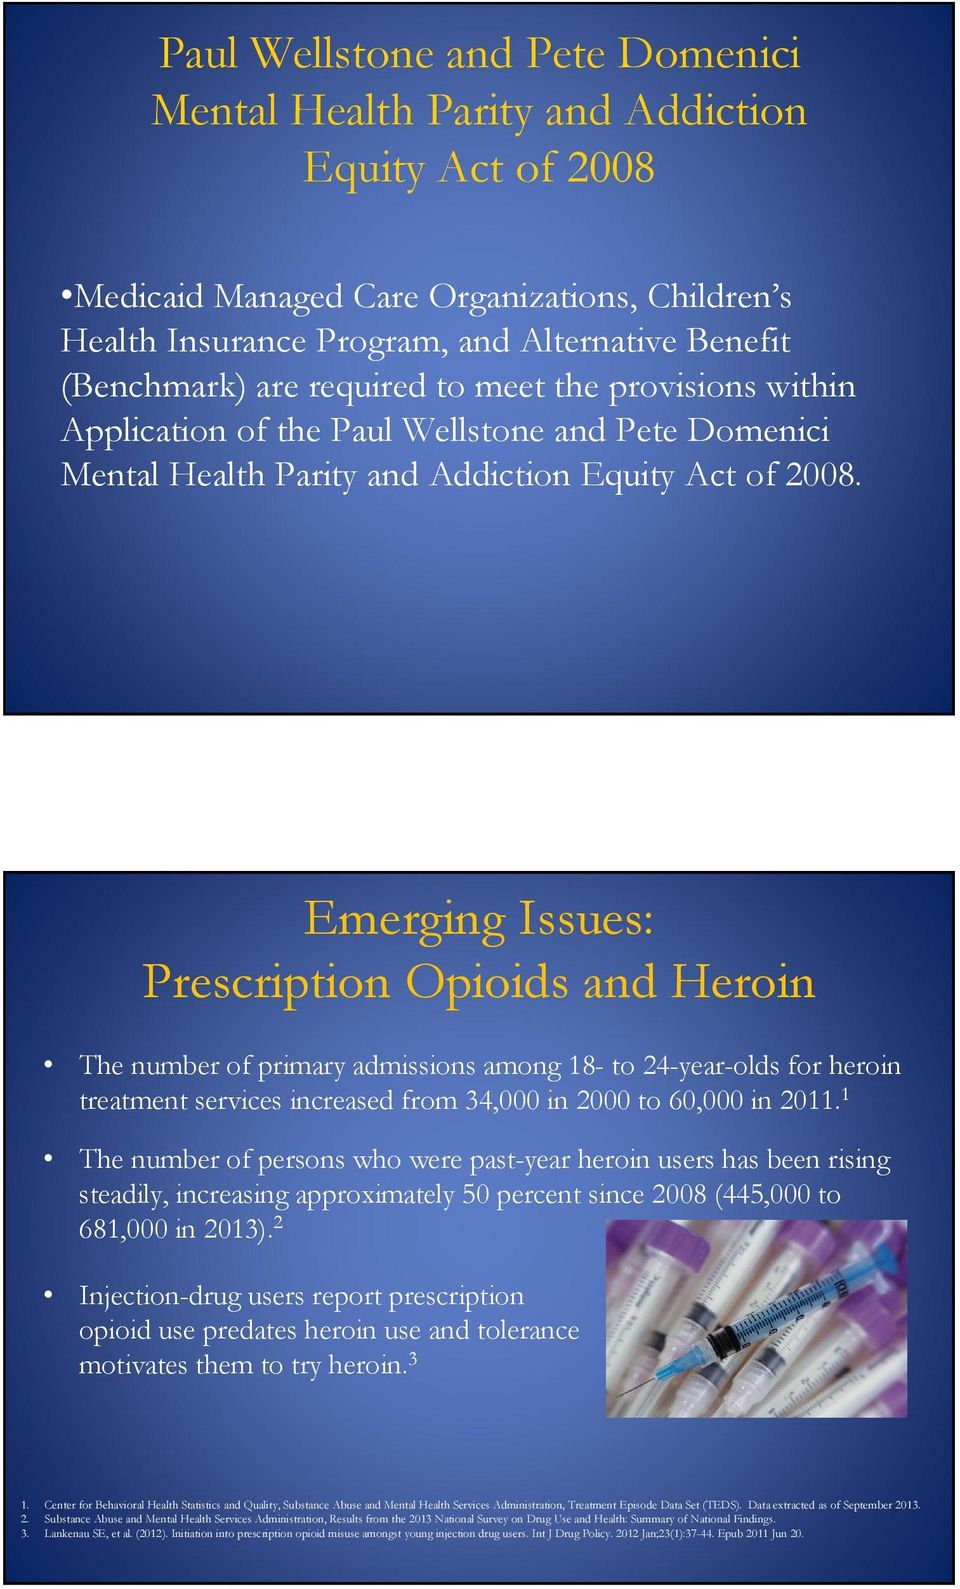 Emerging Issues: Prescription Opioids and Heroin The number of primary admissions among 18- to 24-year-olds for heroin treatment services increased from 34,000 in 2000 to 60,000 in 2011.